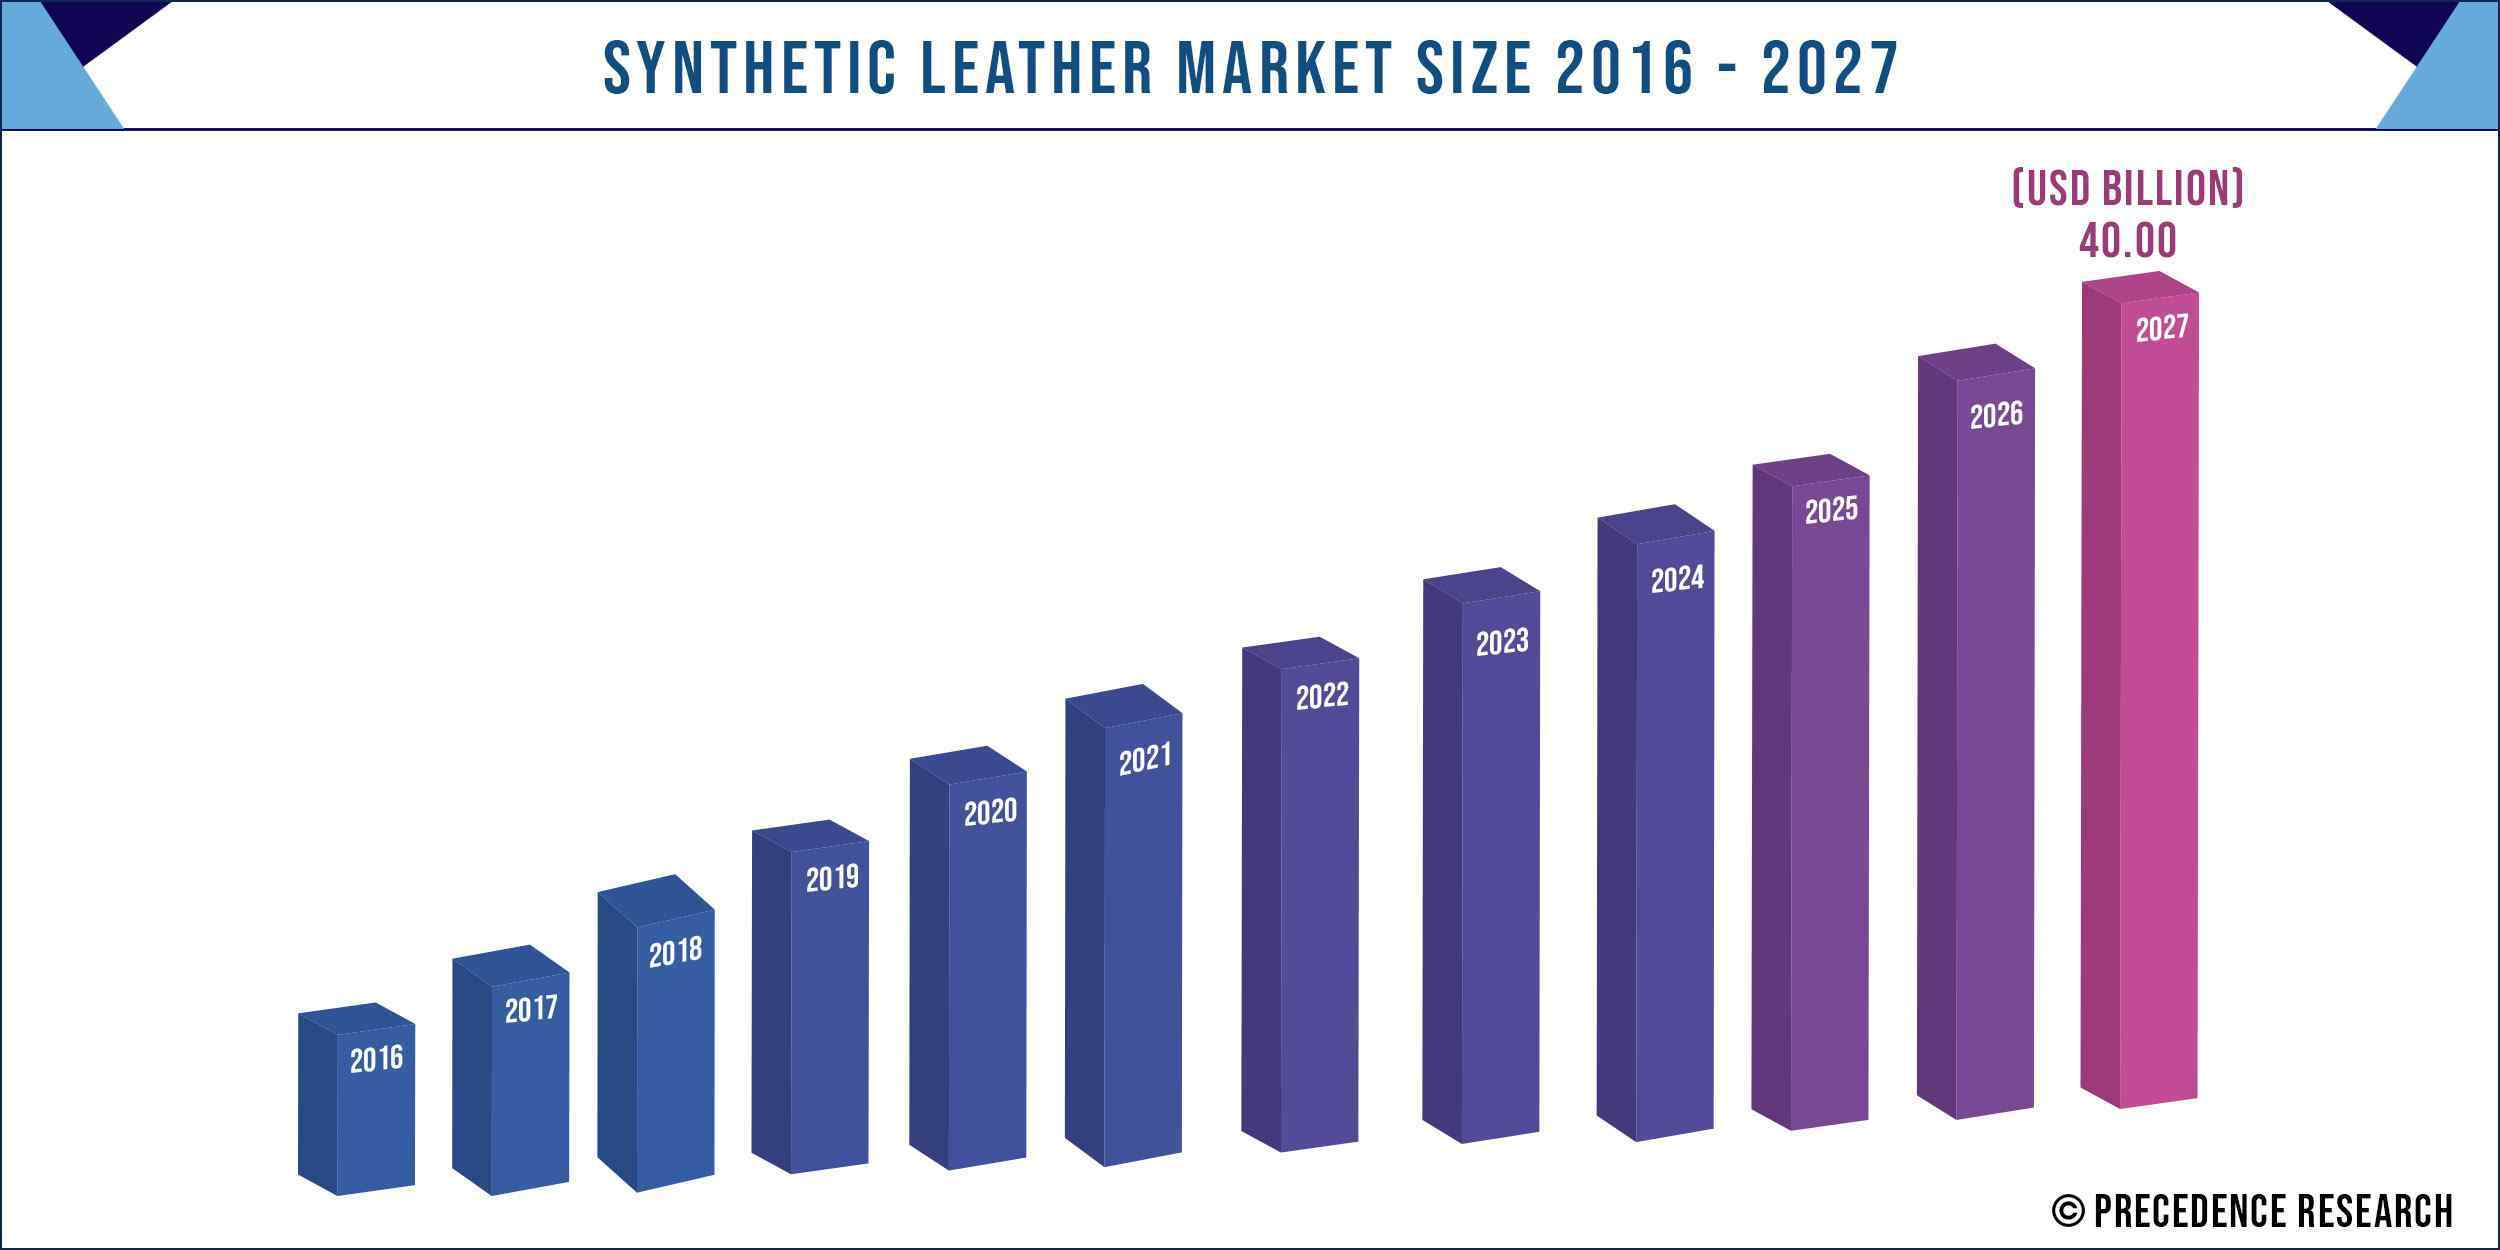 Synthetic Leather Market Size 2016 to 2027